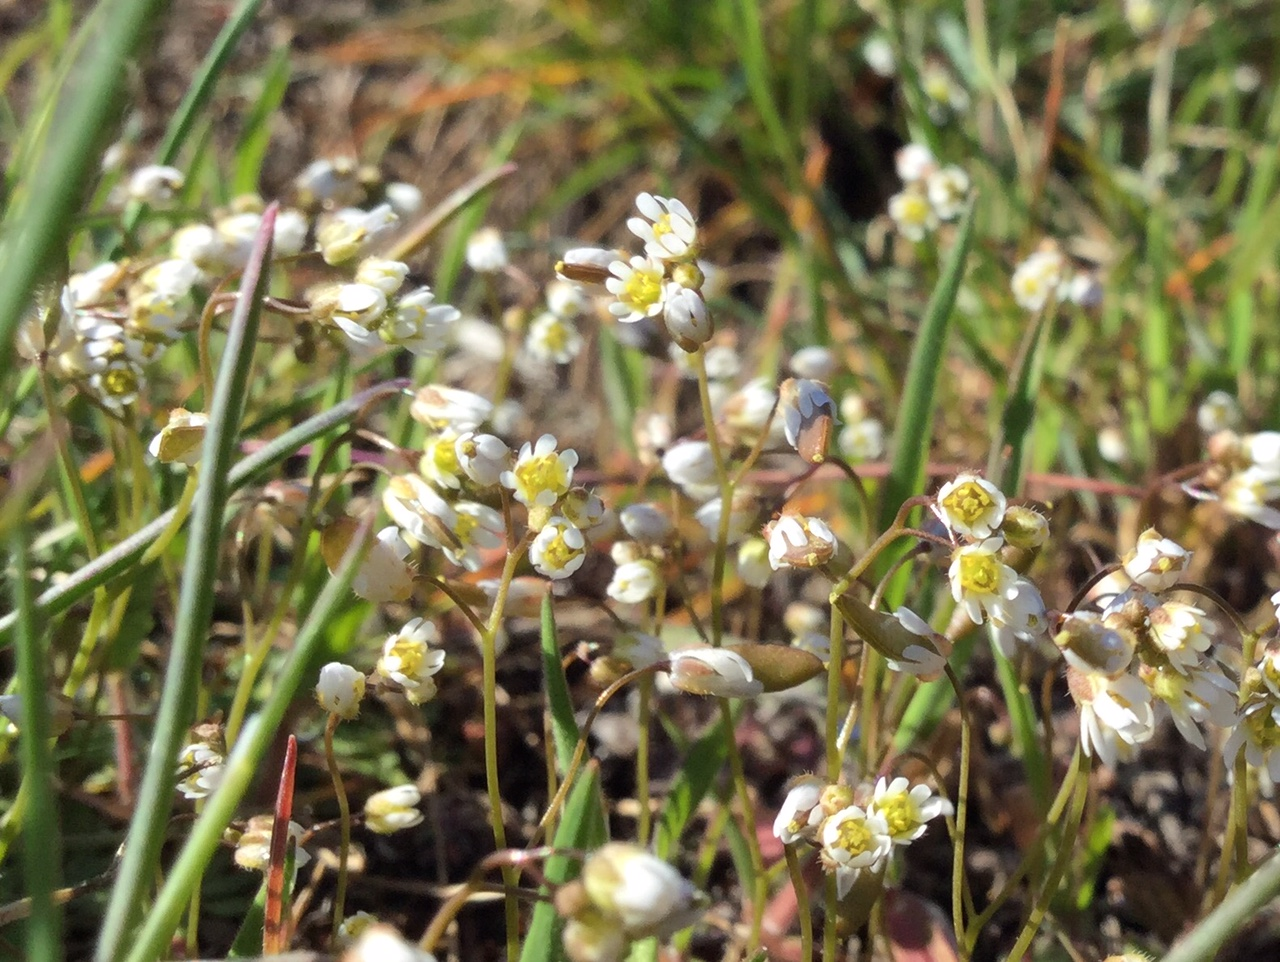 Spring Whitlowgrass Draba Verna One Of The Earliest Blooms In The